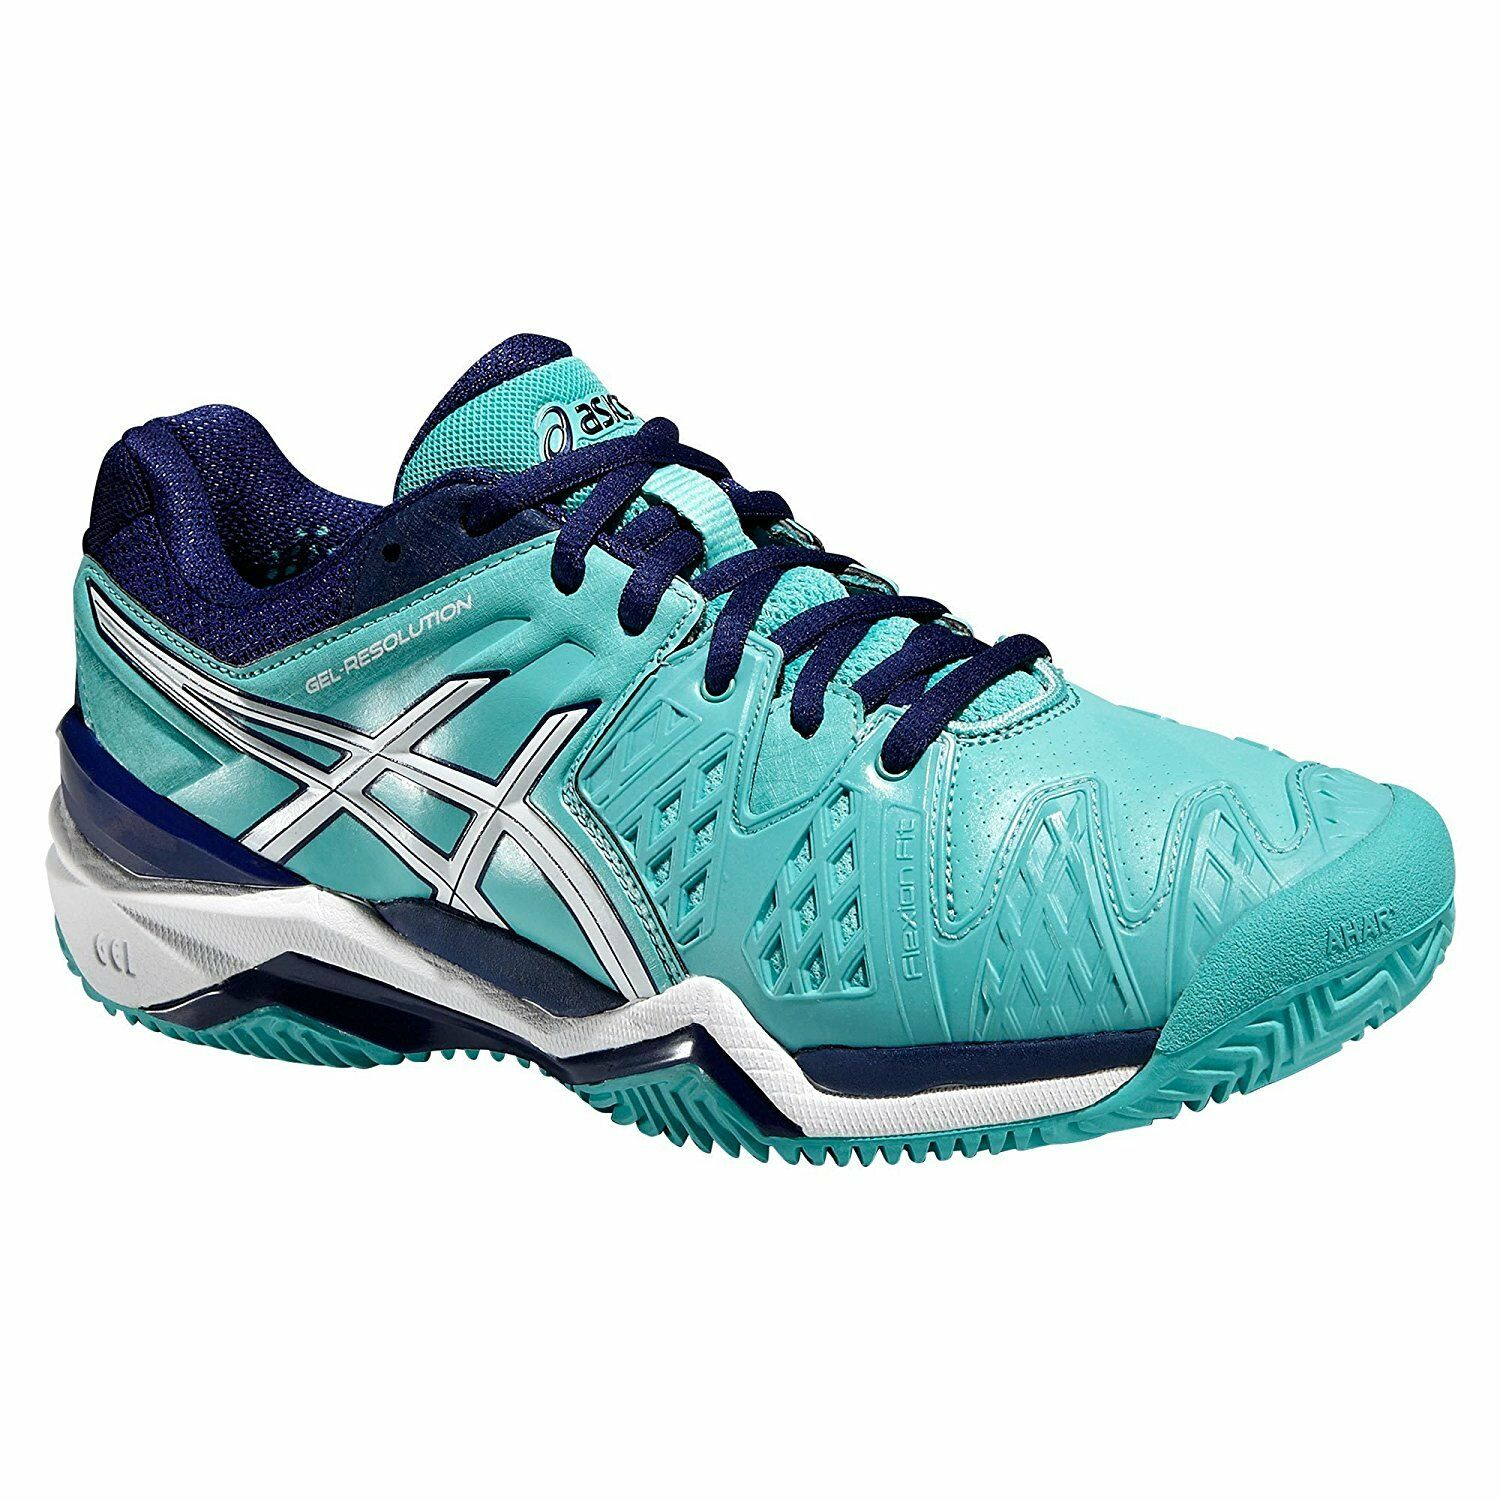 ASICS Gel-Resolution 6 CLAY donna   da tennis Gravel  Sabbia spazio ASICS e553y